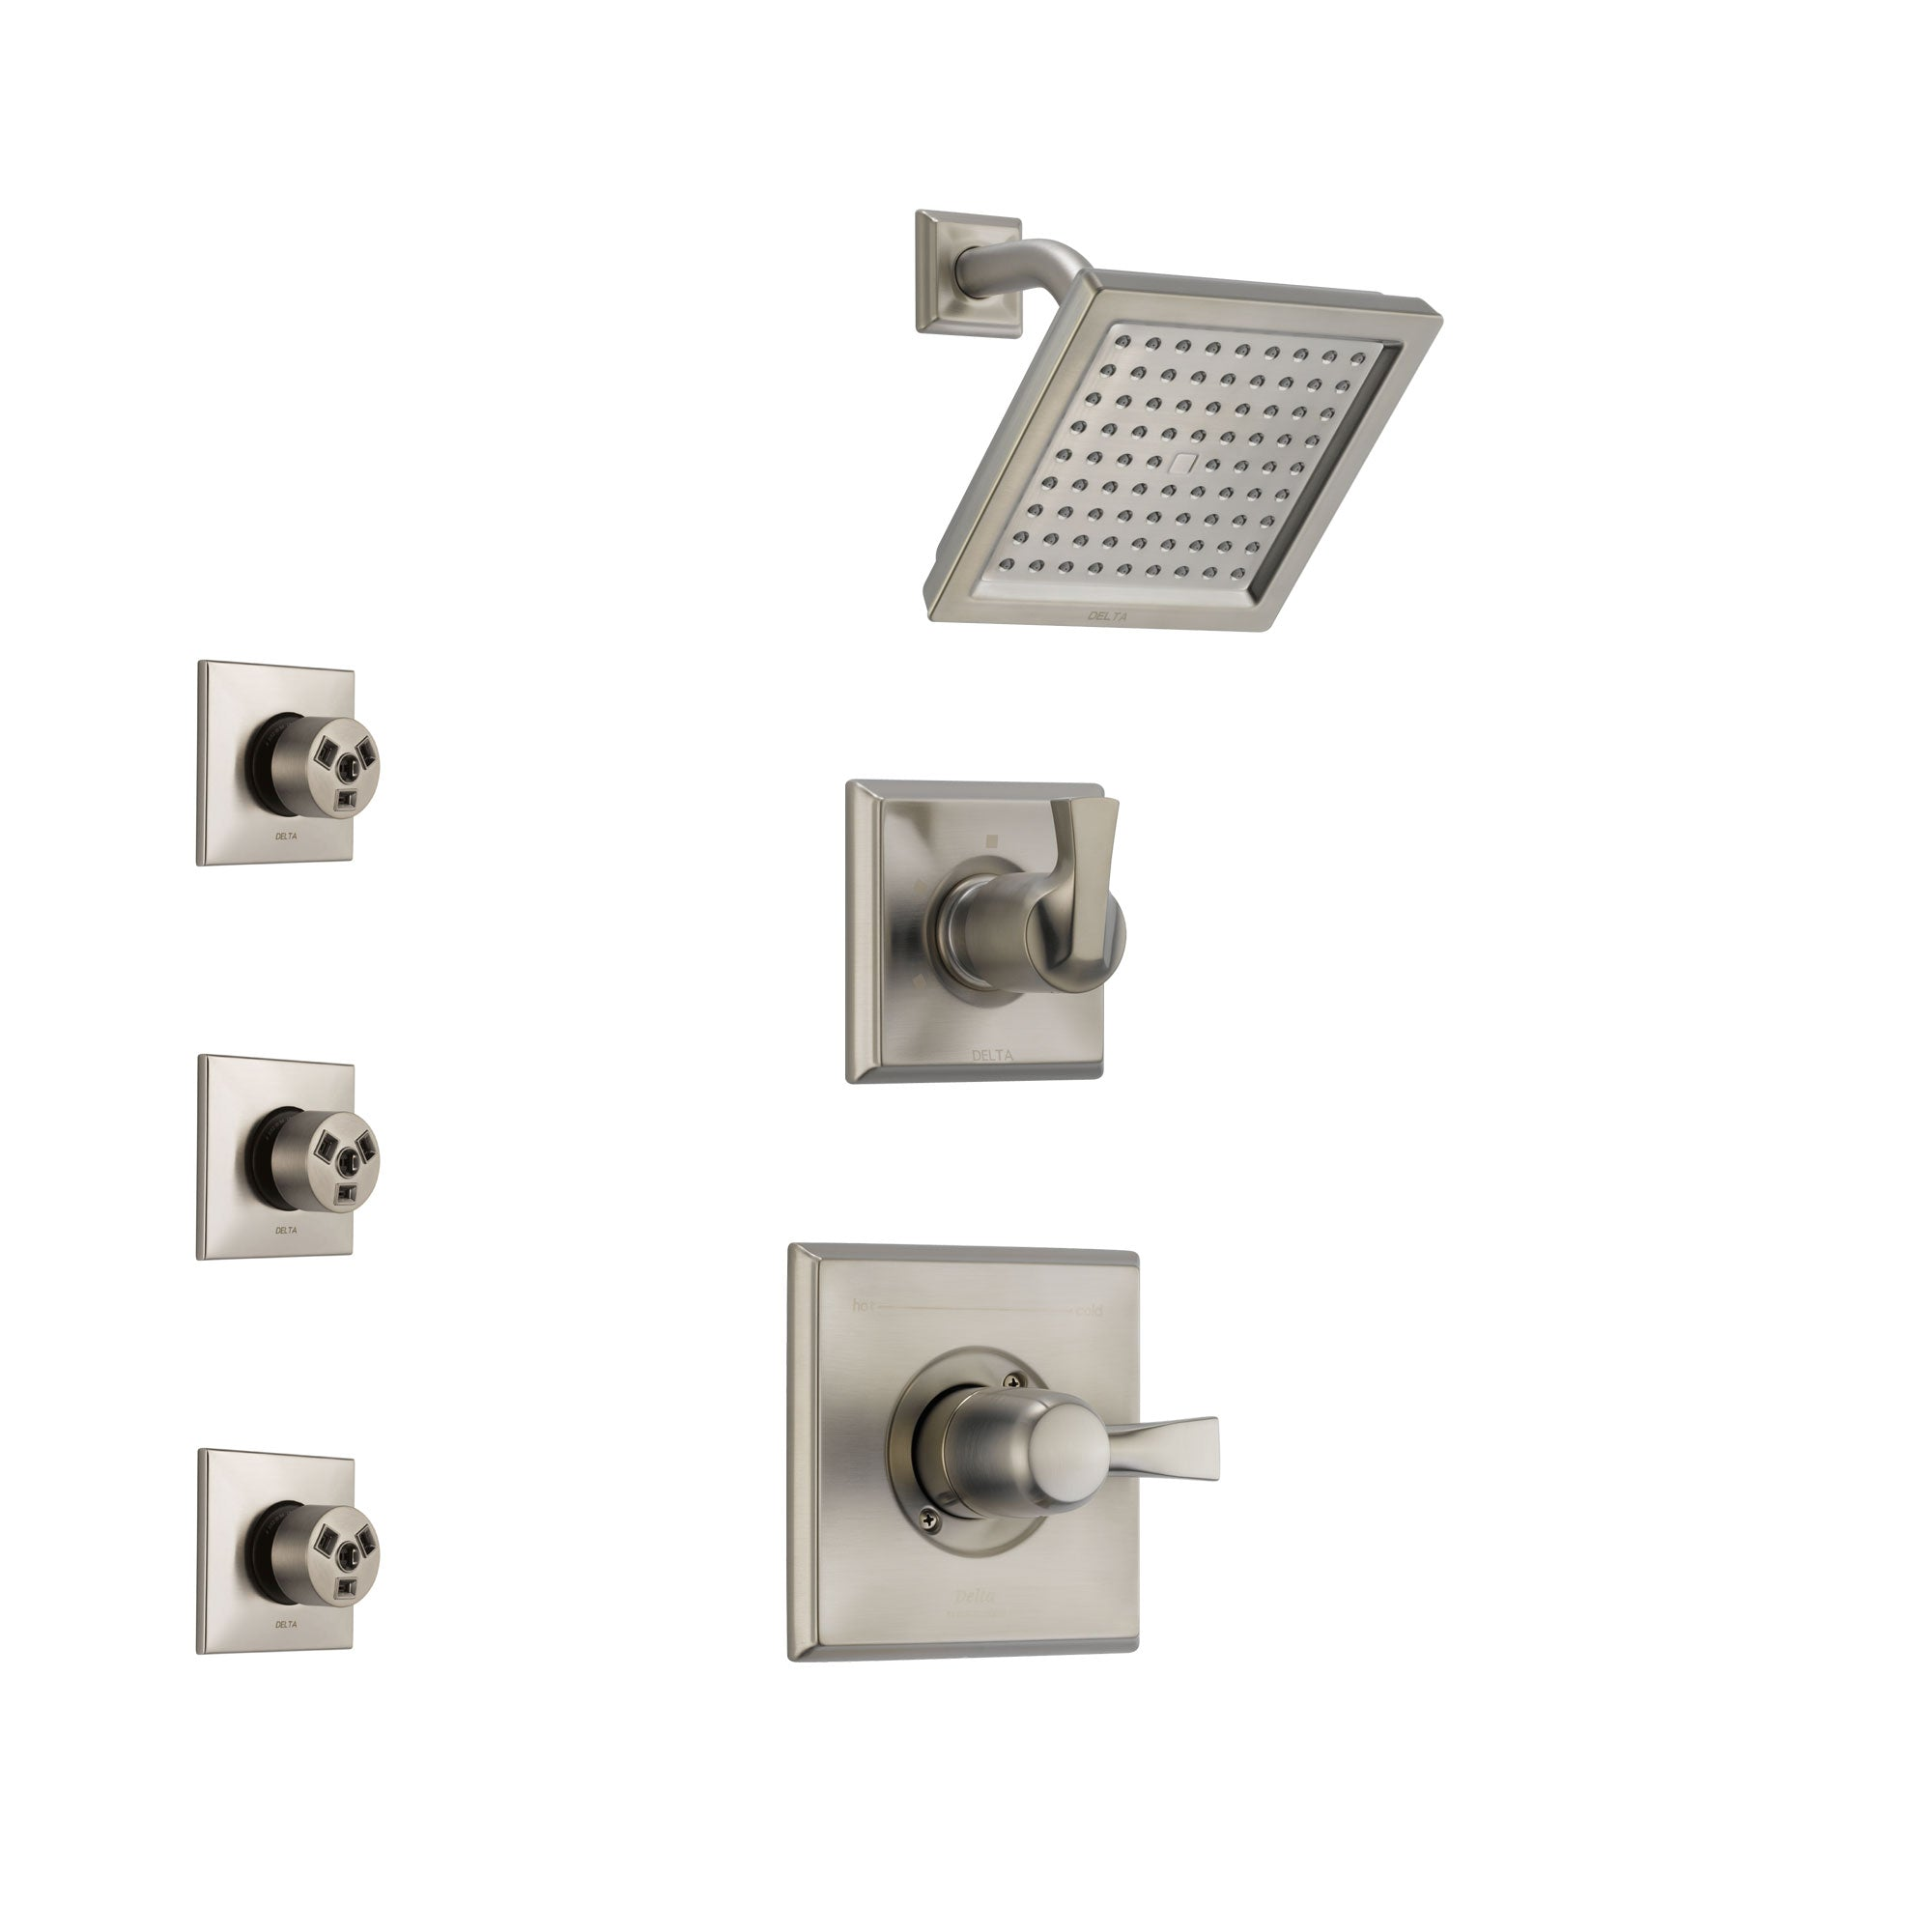 Delta Dryden Stainless Steel Finish Shower System with Control Handle, 3-Setting Diverter, Showerhead, and 3 Body Sprays SS142511SS2